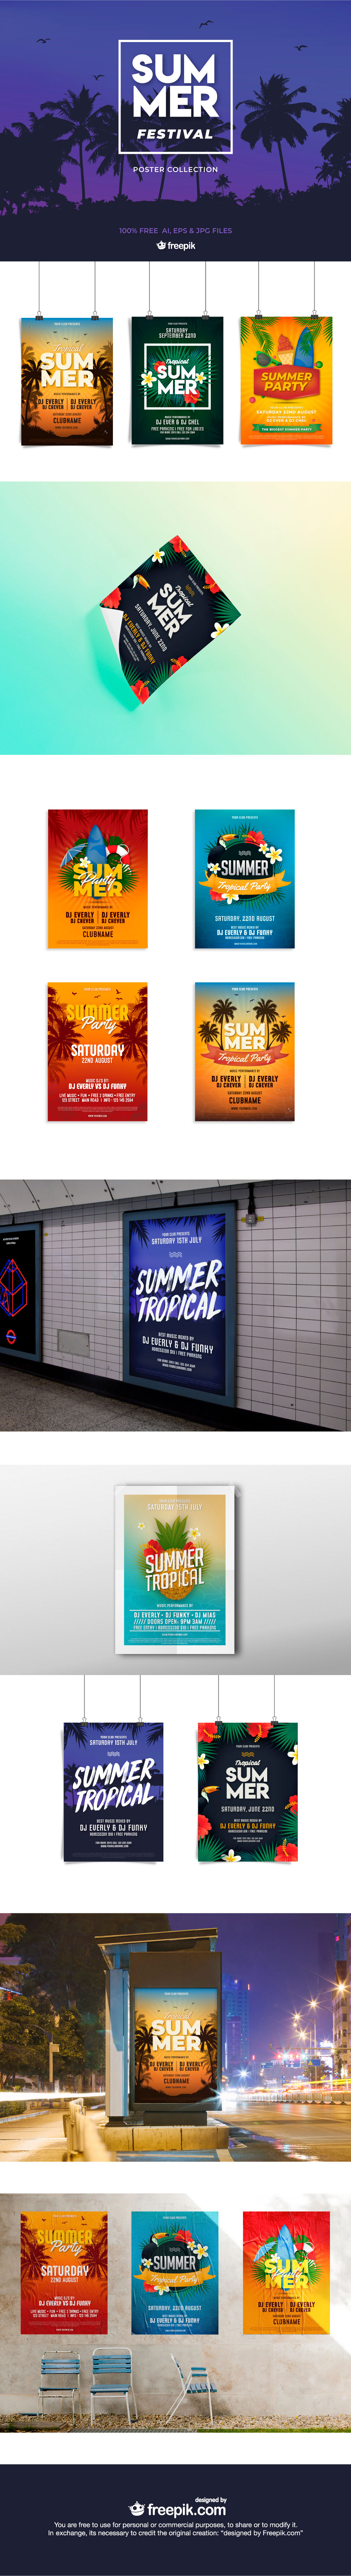 Free Summer Festival Poster Templates